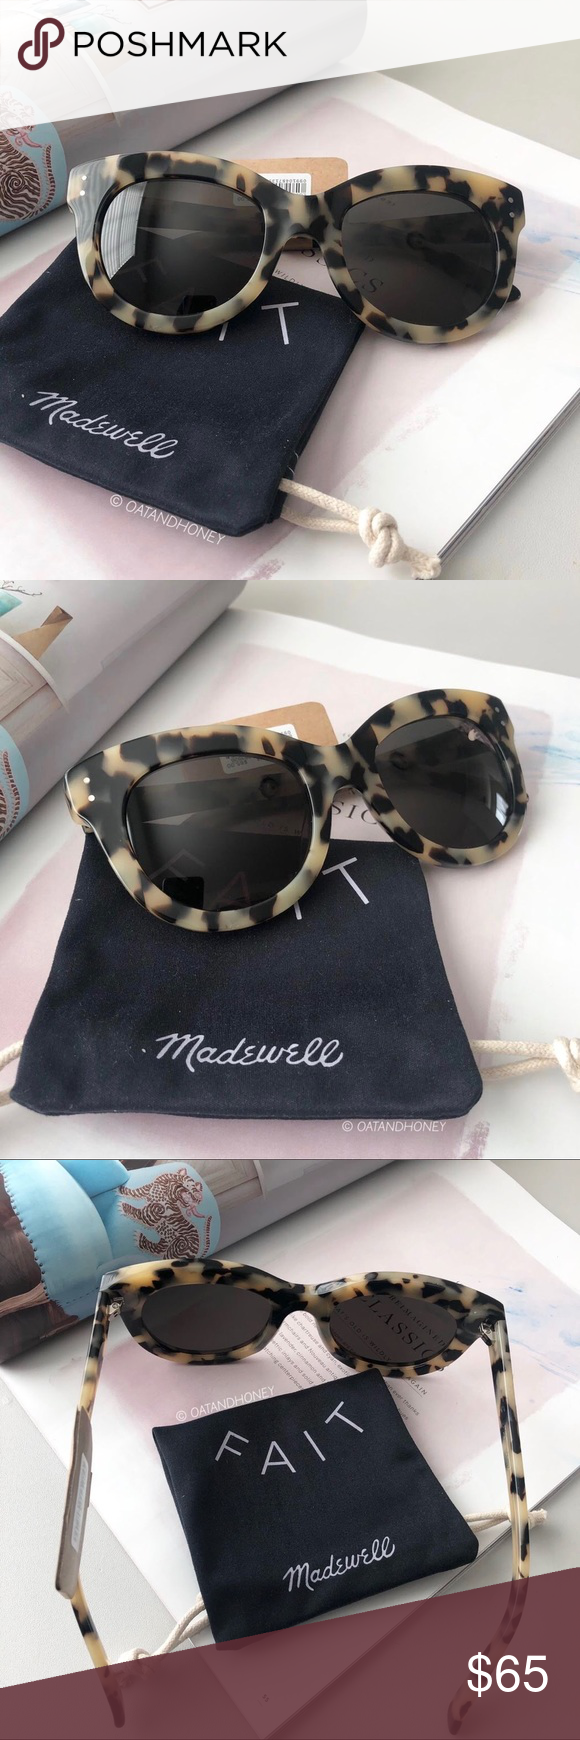 c3f7a28141 Madewell Pacific Cat-Eye Sunglasses New with tag. Made from hand cut  acetate. Acetate frame. UV protection. Includes the Madewell pouc…